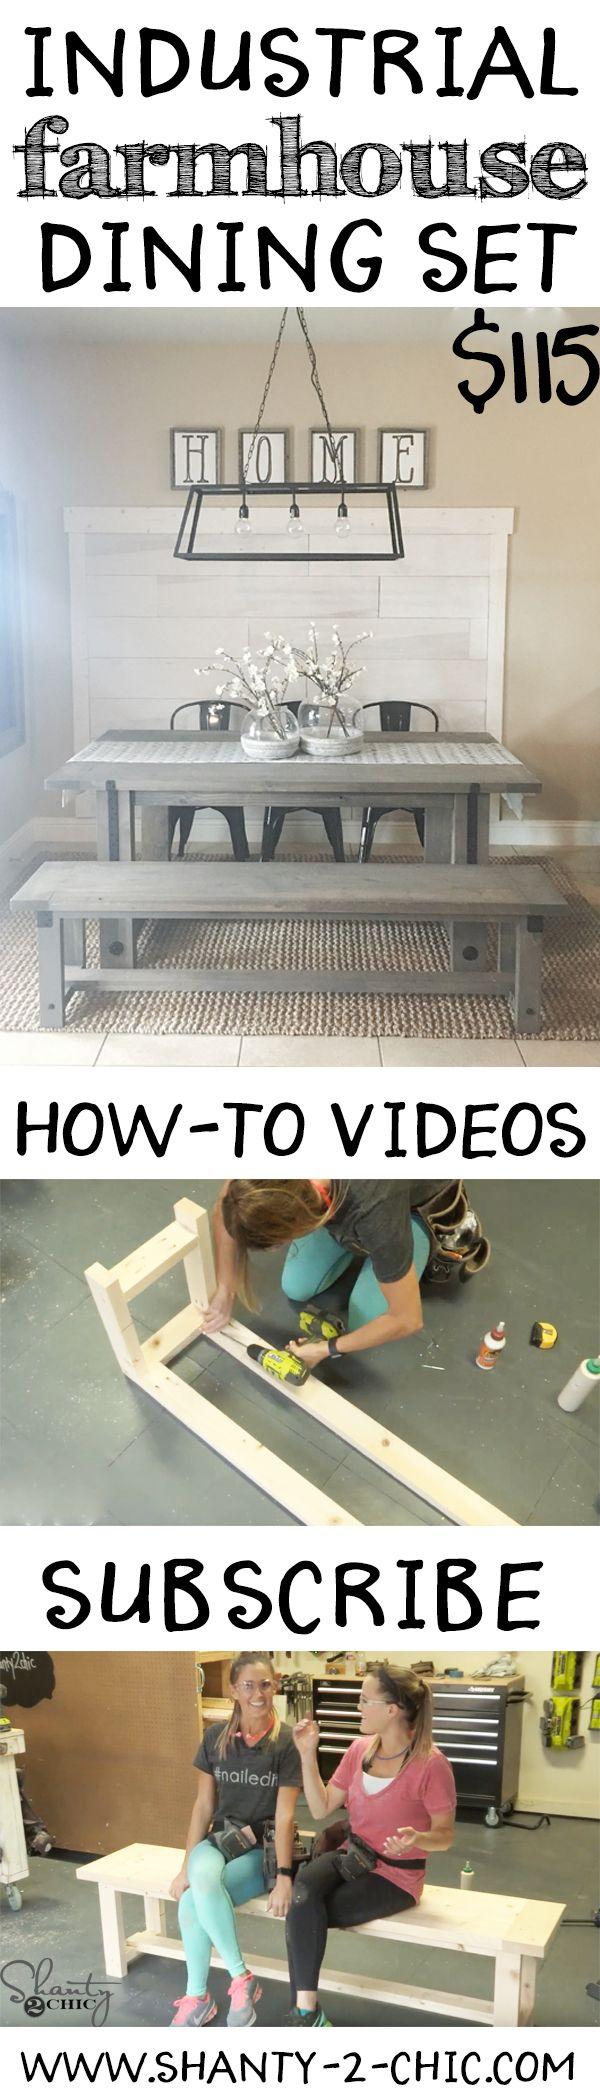 Table success do it yourself home projects from ana white diy 85 - Build Your Own Industrial Farmhouse Dining Set For Only 115 In Lumber With Free Plans And